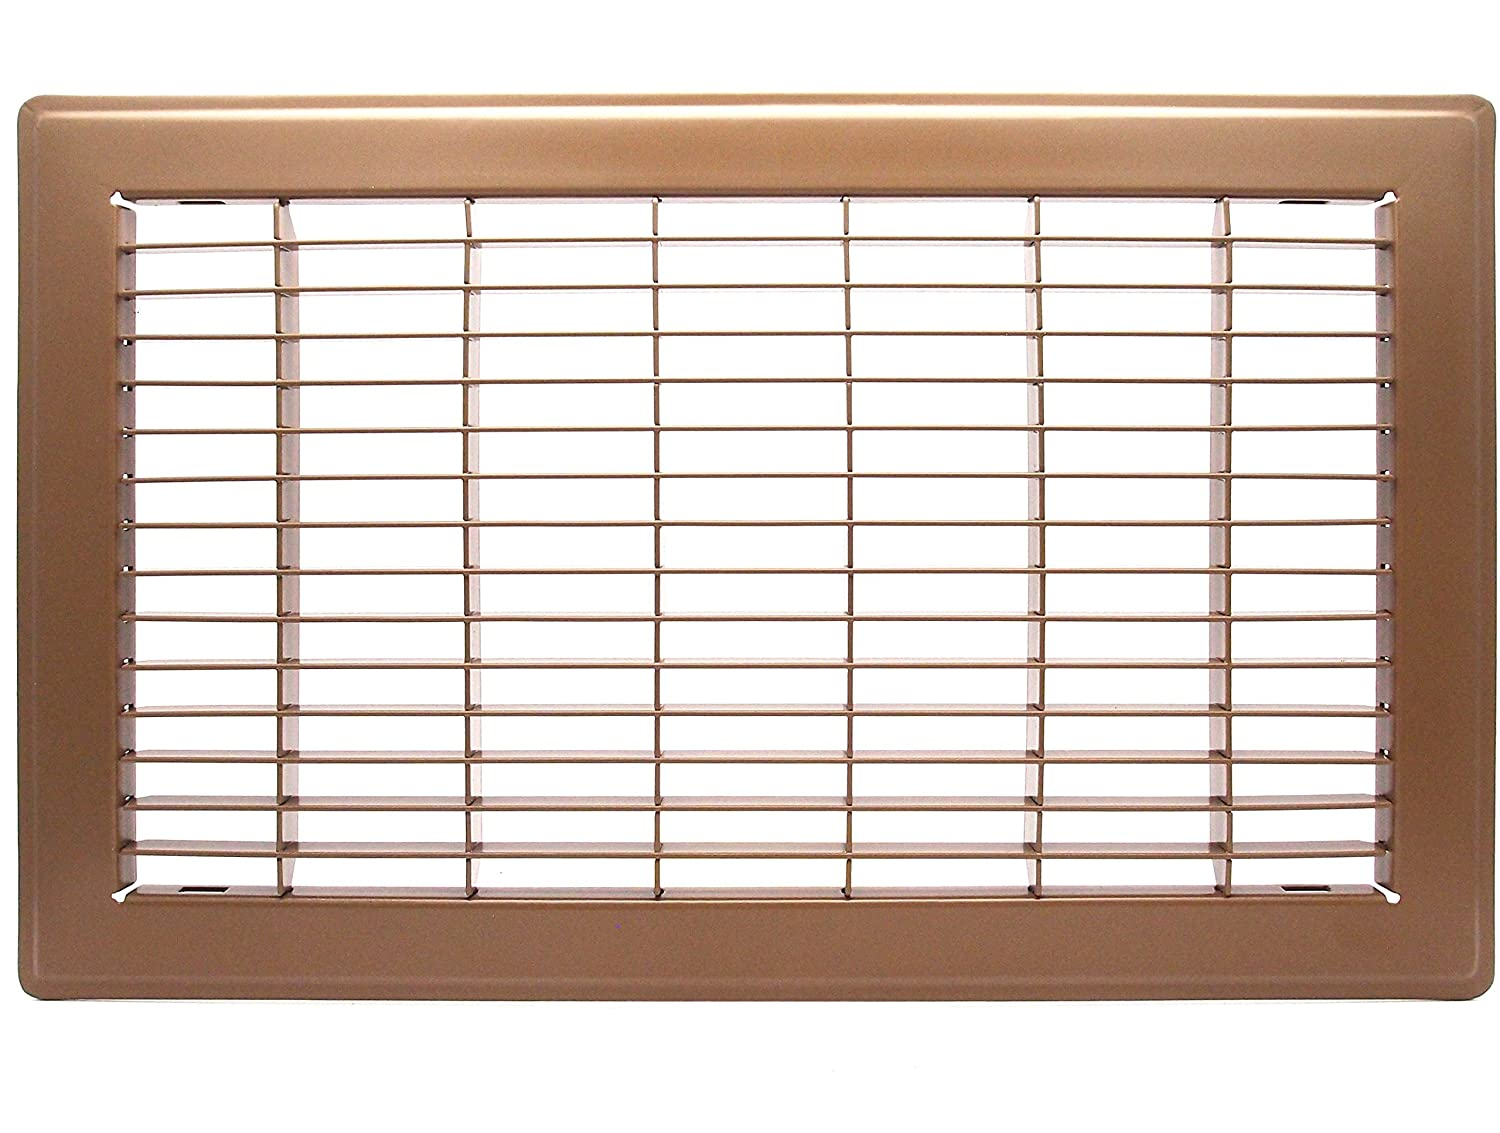 Brown 6 X 12 Floor Grille HVAC Premium CECOMINOD081385 Outer Dimensions: 7.75 X 13.75 Fixed Blades Air Grill